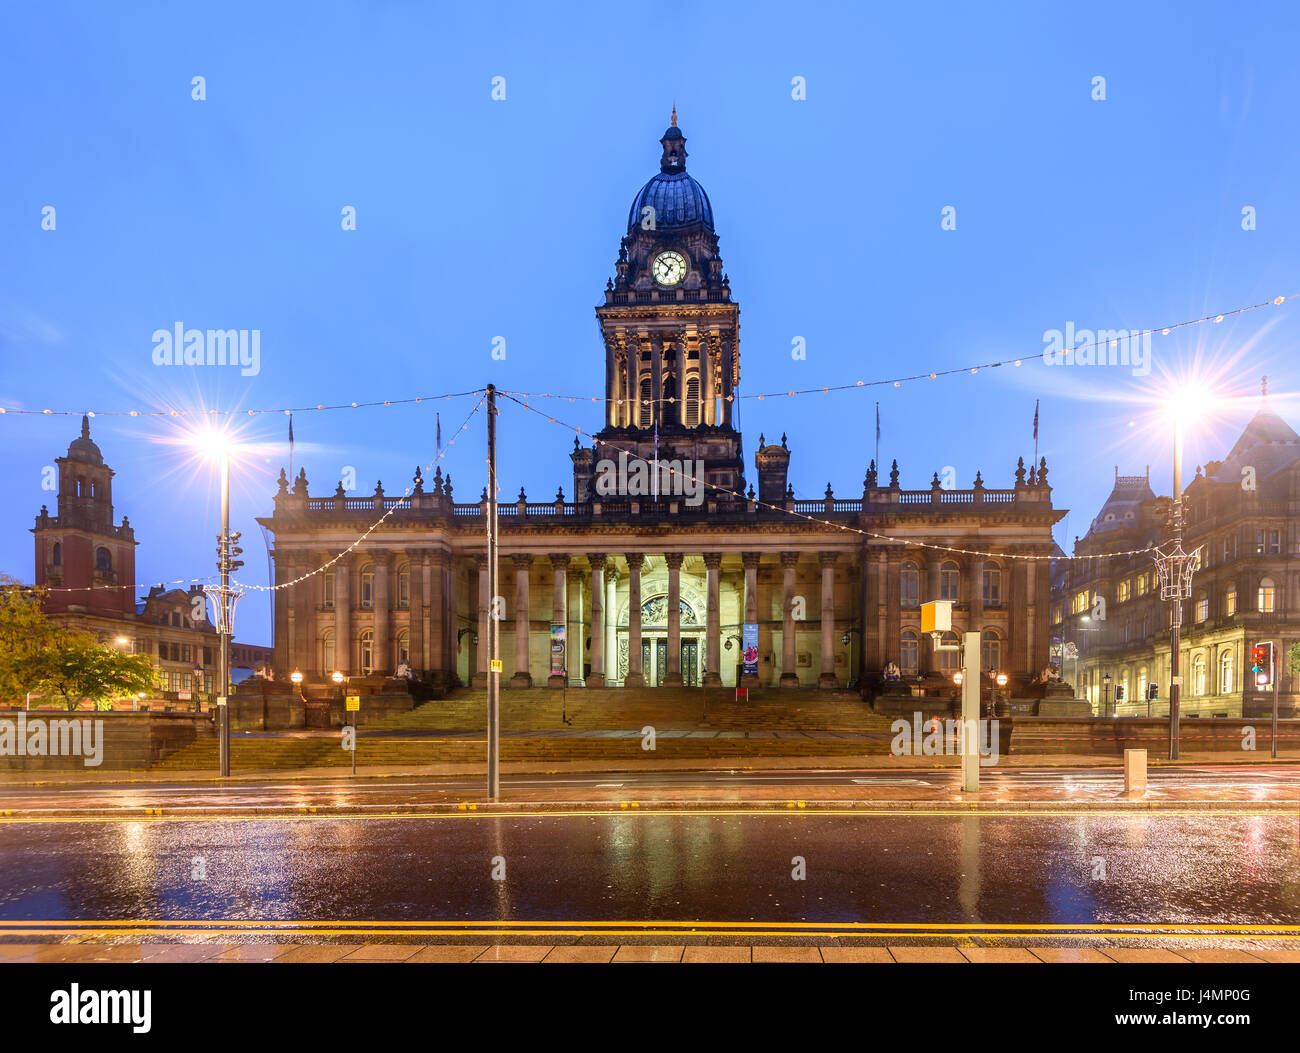 Wet road passing in front of Leeds Town Hall - Stock Image